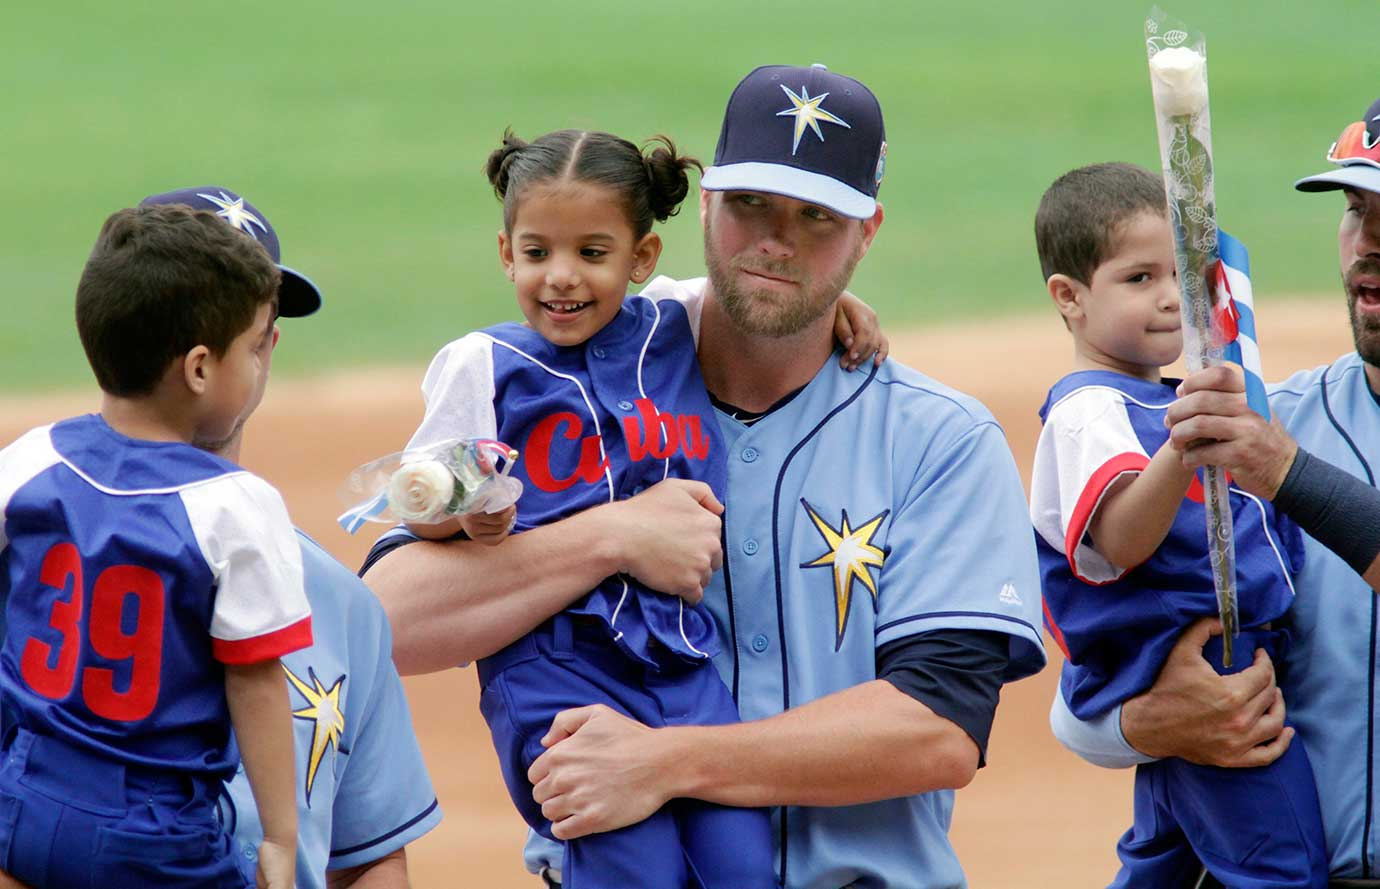 Here are some of the images that caught our eye on a day in which the Tampa Bay Rays made the first visit to Cuba by a major league team since 1999. In this photo, Rays pitcher Ryan Webb holds a Cuban child during introductions. President Barack Obama attended the game and is the first sitting president to have visited the communist island in 88 years.